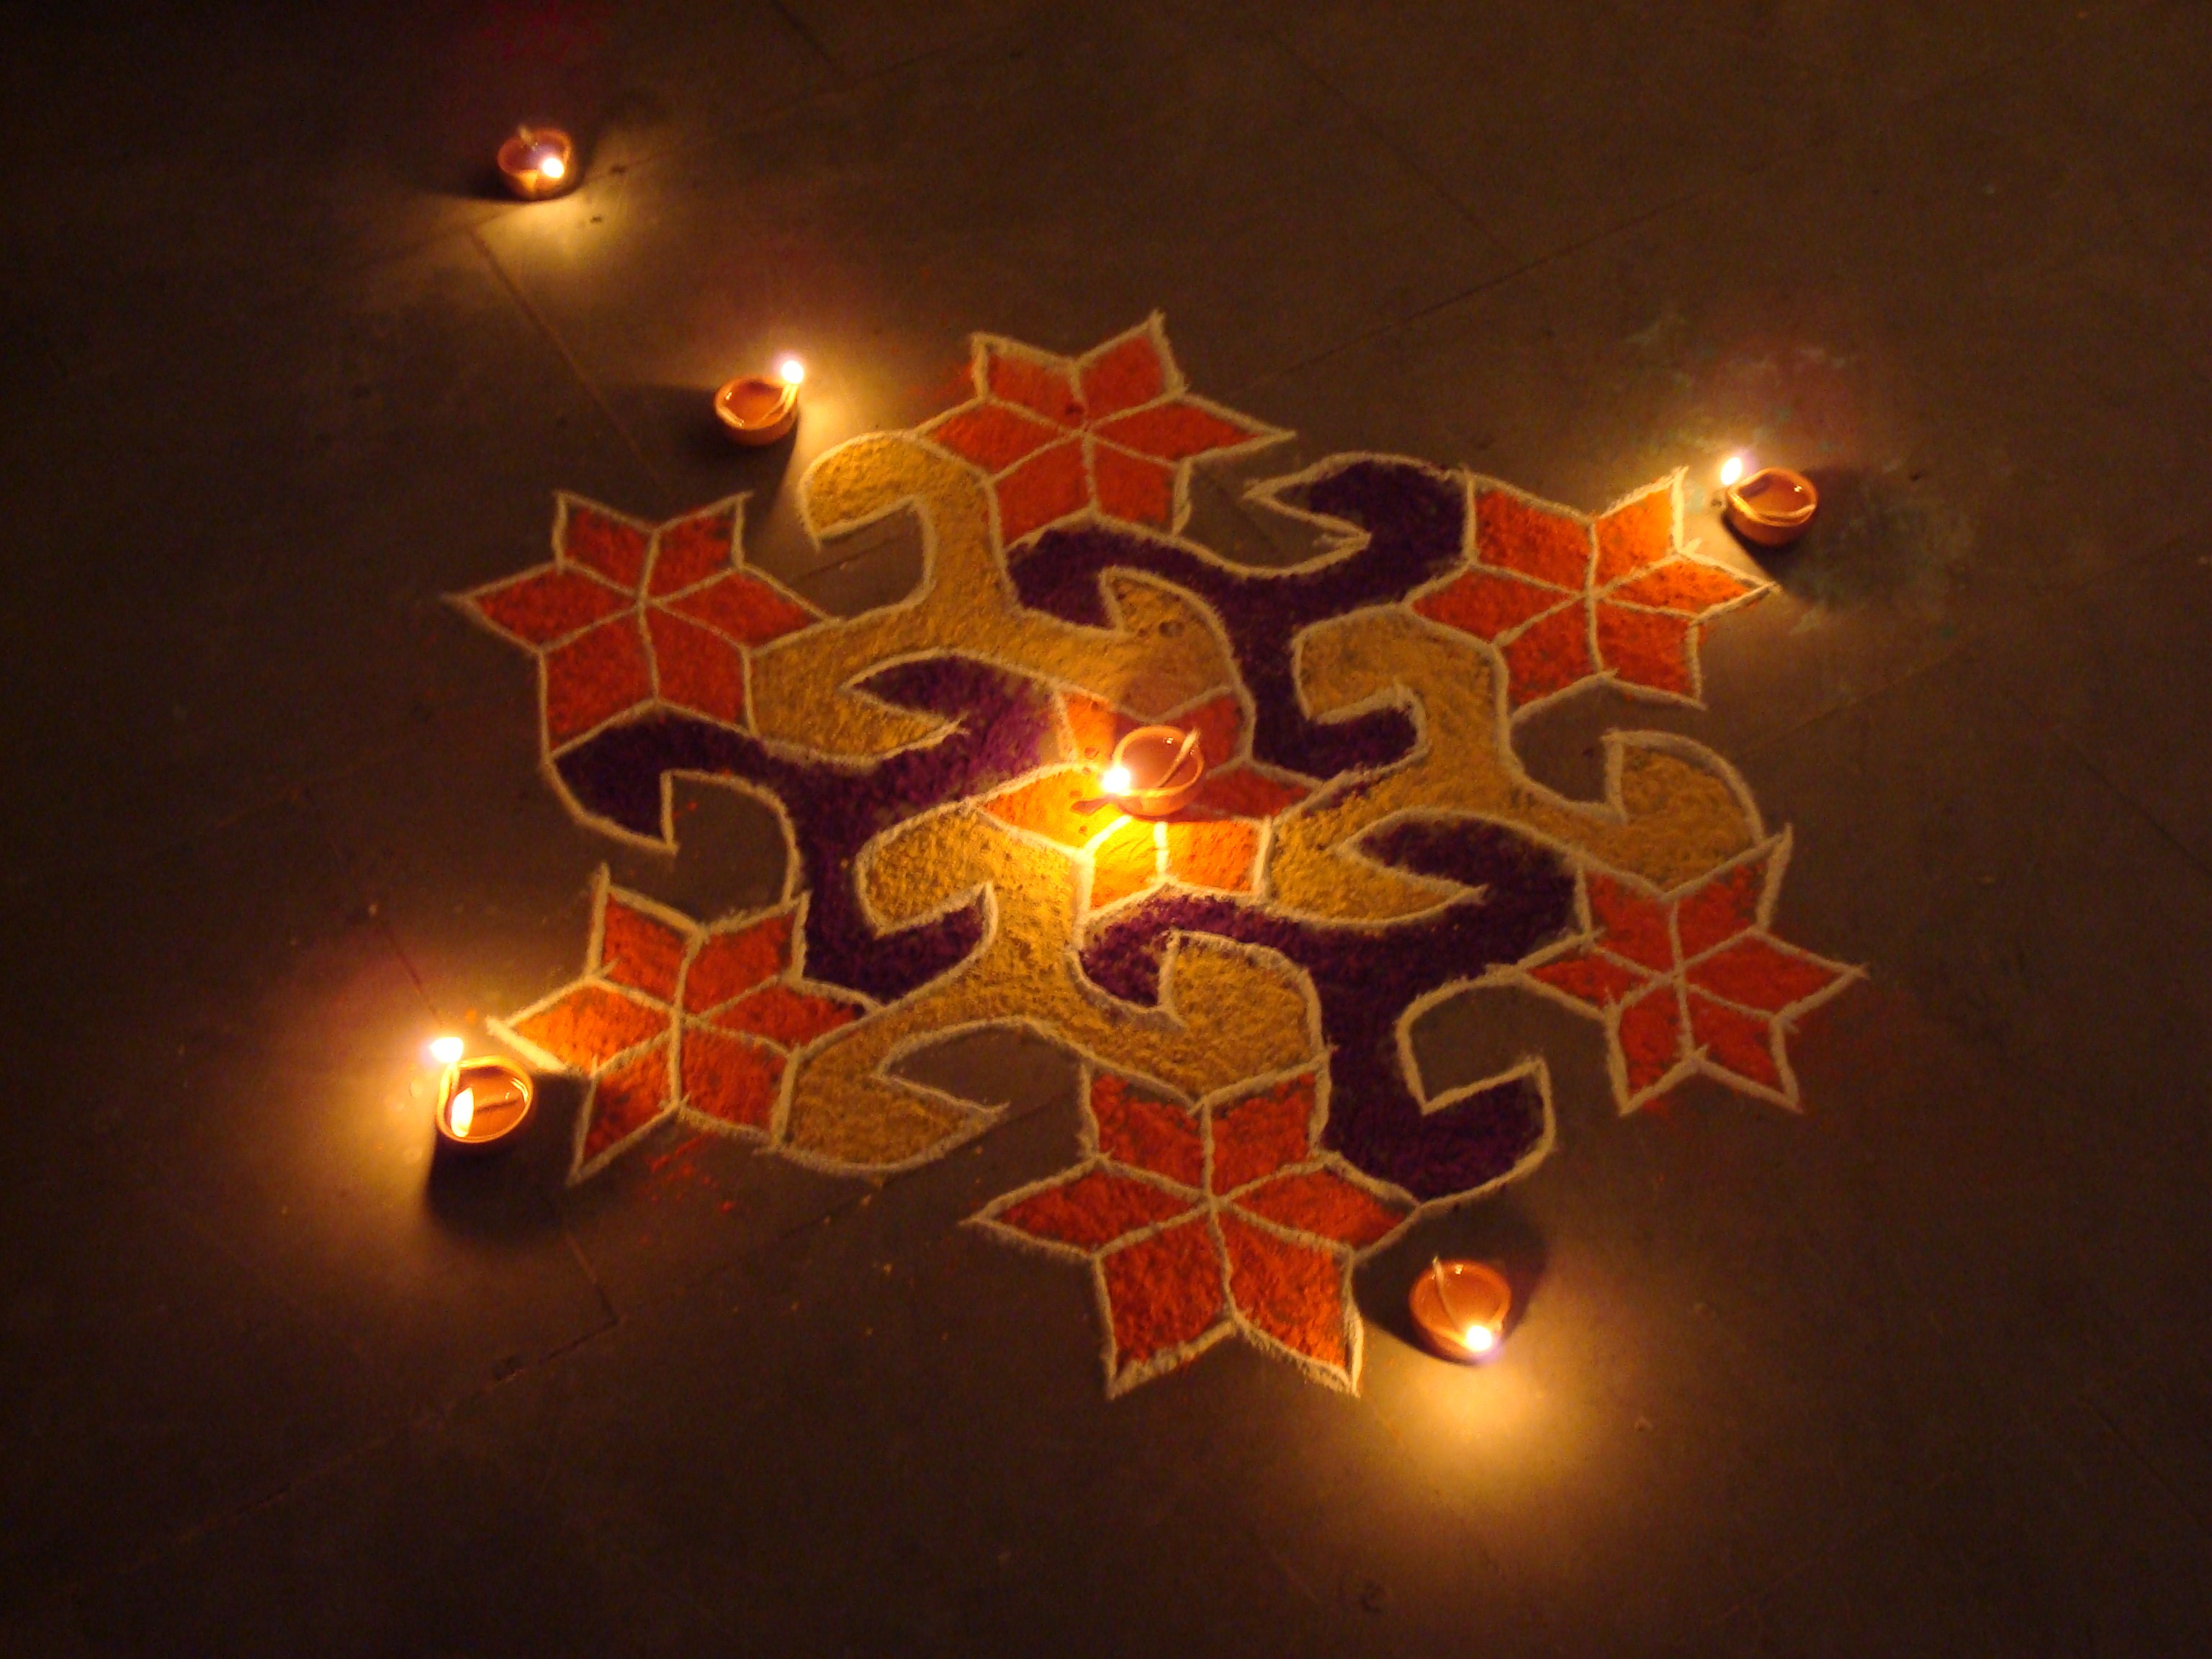 Rangoli Designs Collection for Any Festival 3072x2304